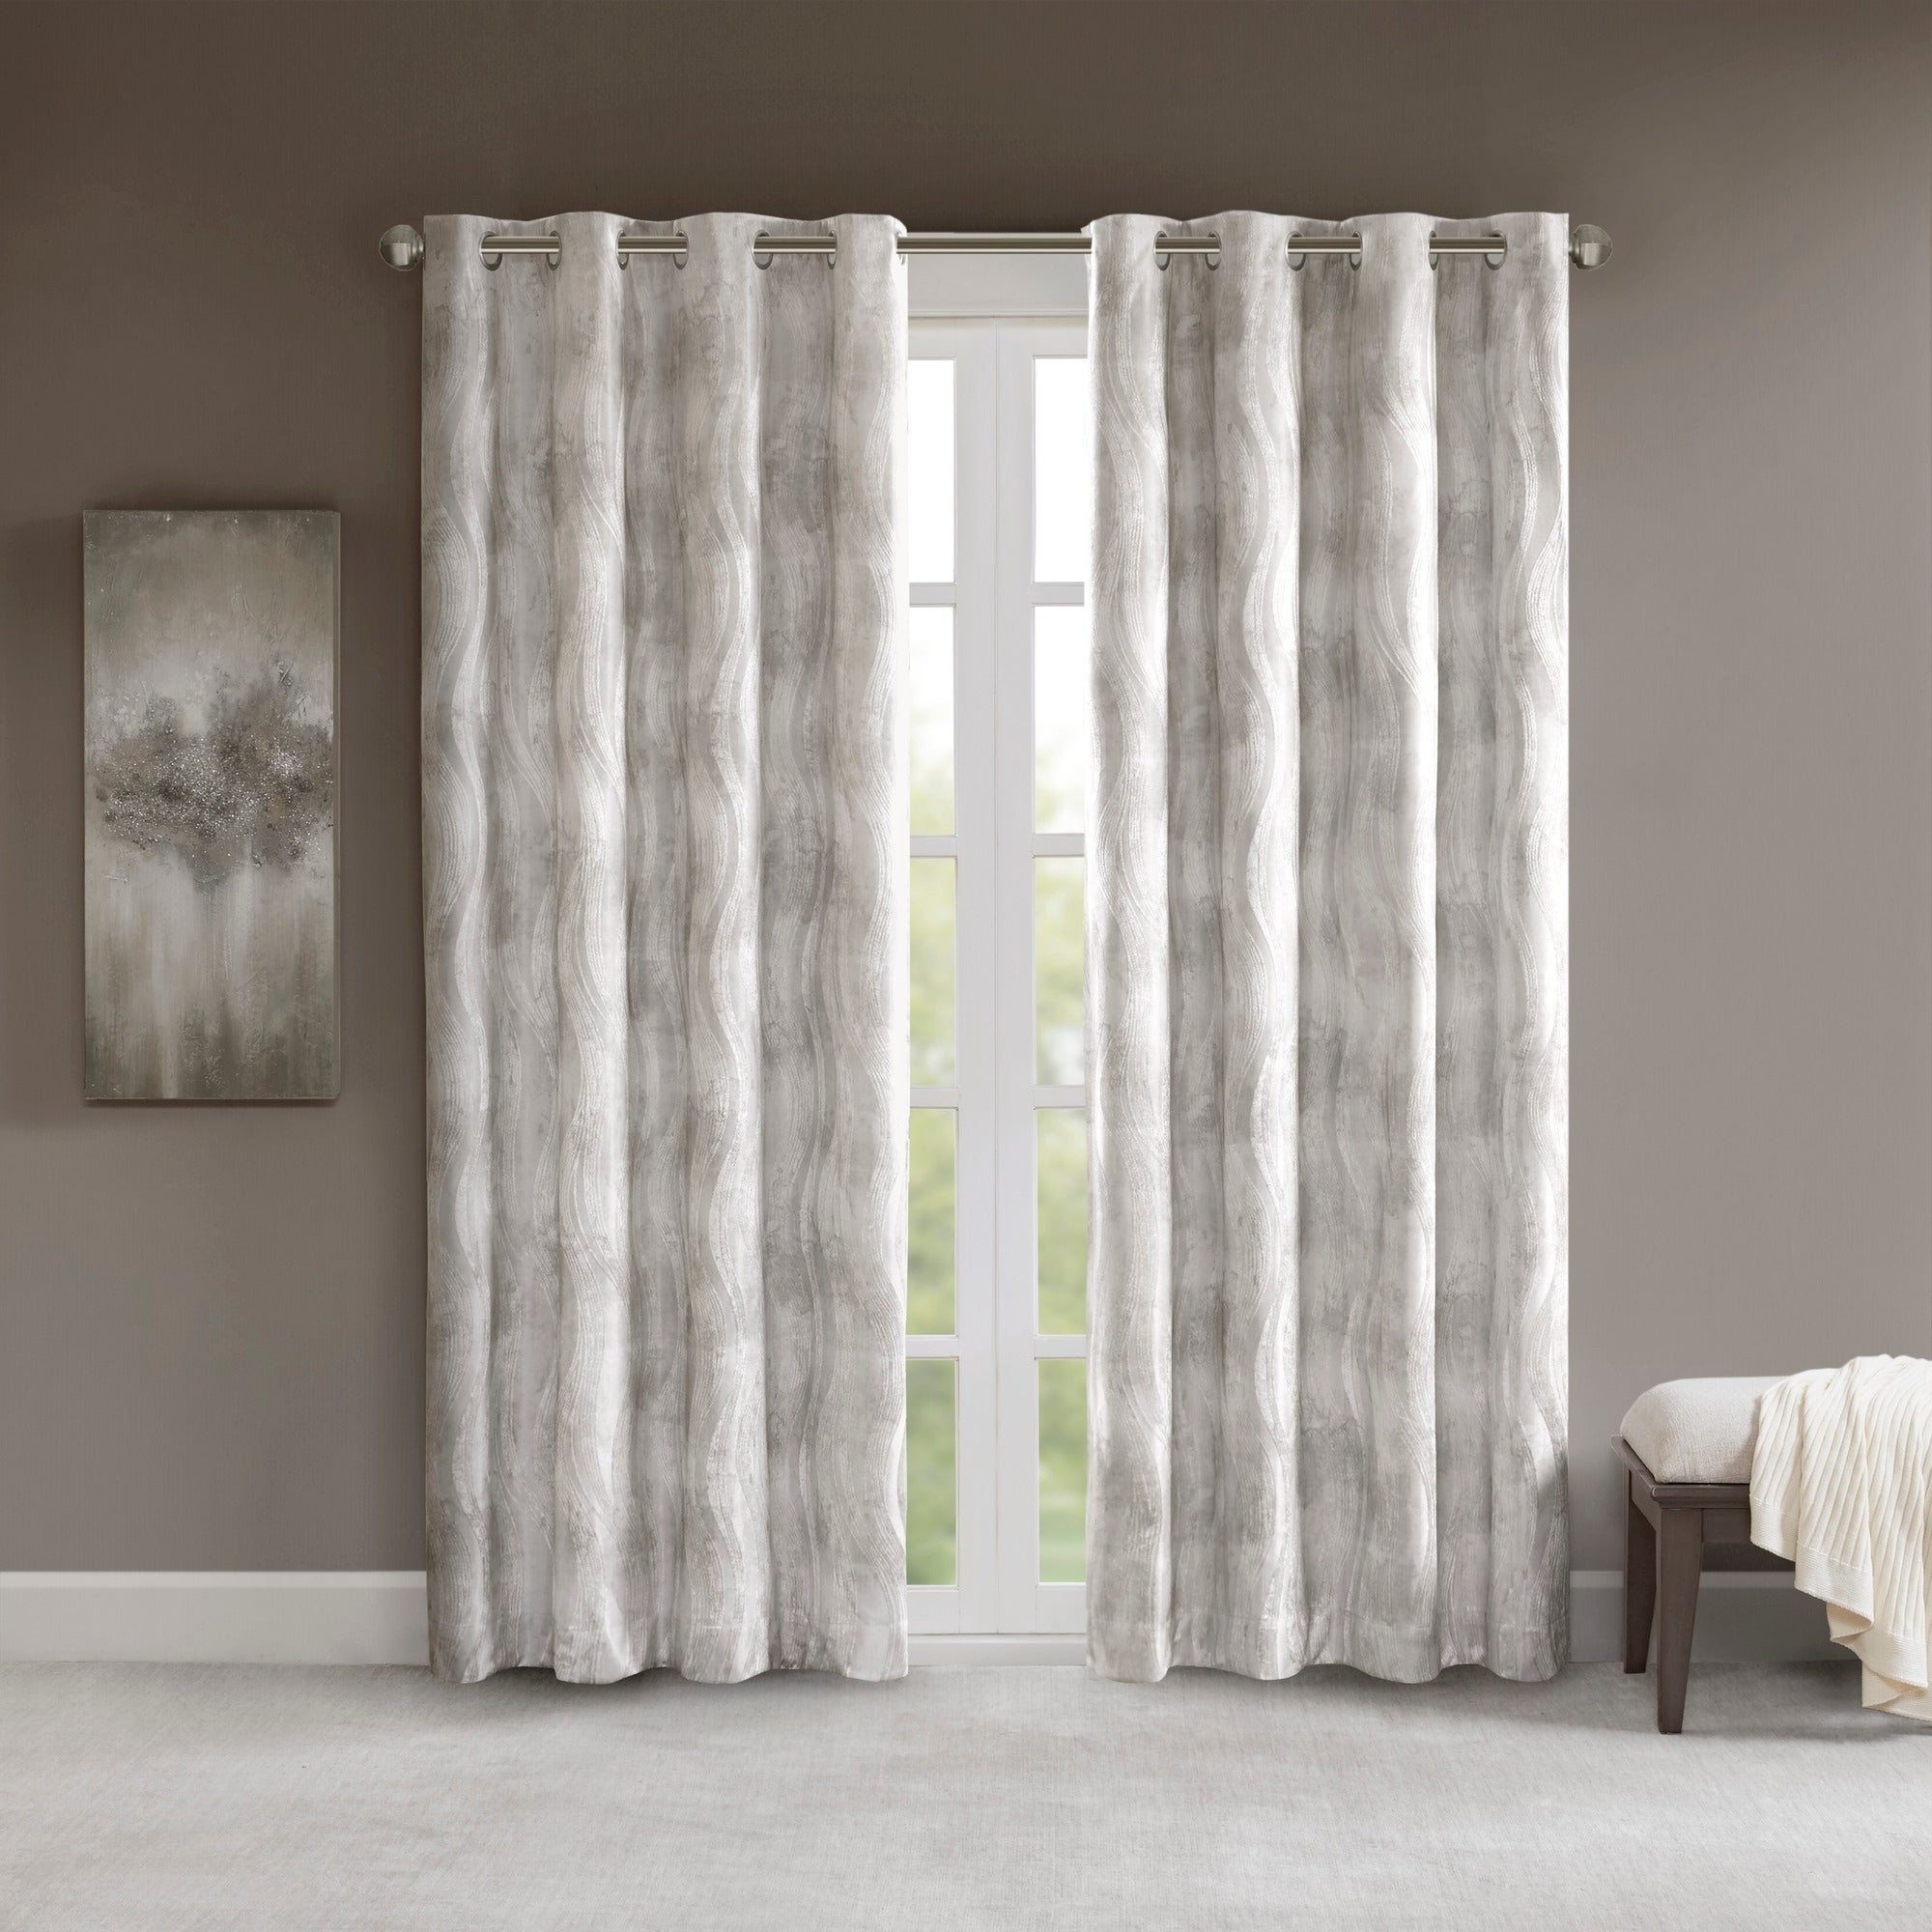 Sunsmart Alastair Ivory Printed Jacquard Total Blackout Single Curtain Panel In Favorite Sunsmart Abel Ogee Knitted Jacquard Total Blackout Curtain Panels (View 19 of 20)